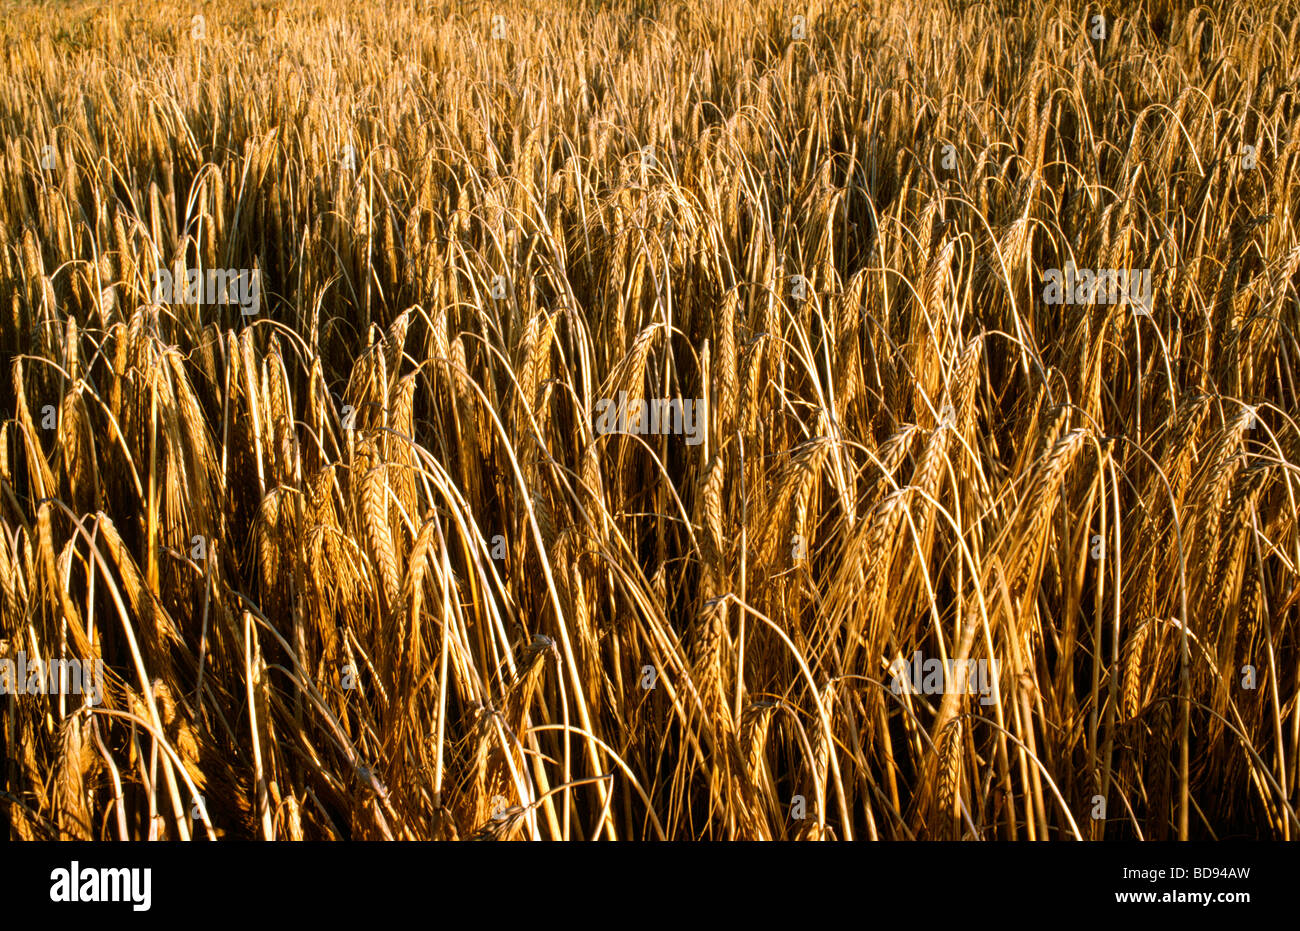 A FIELD OF WHEAT WHEAT FIELD - Stock Image